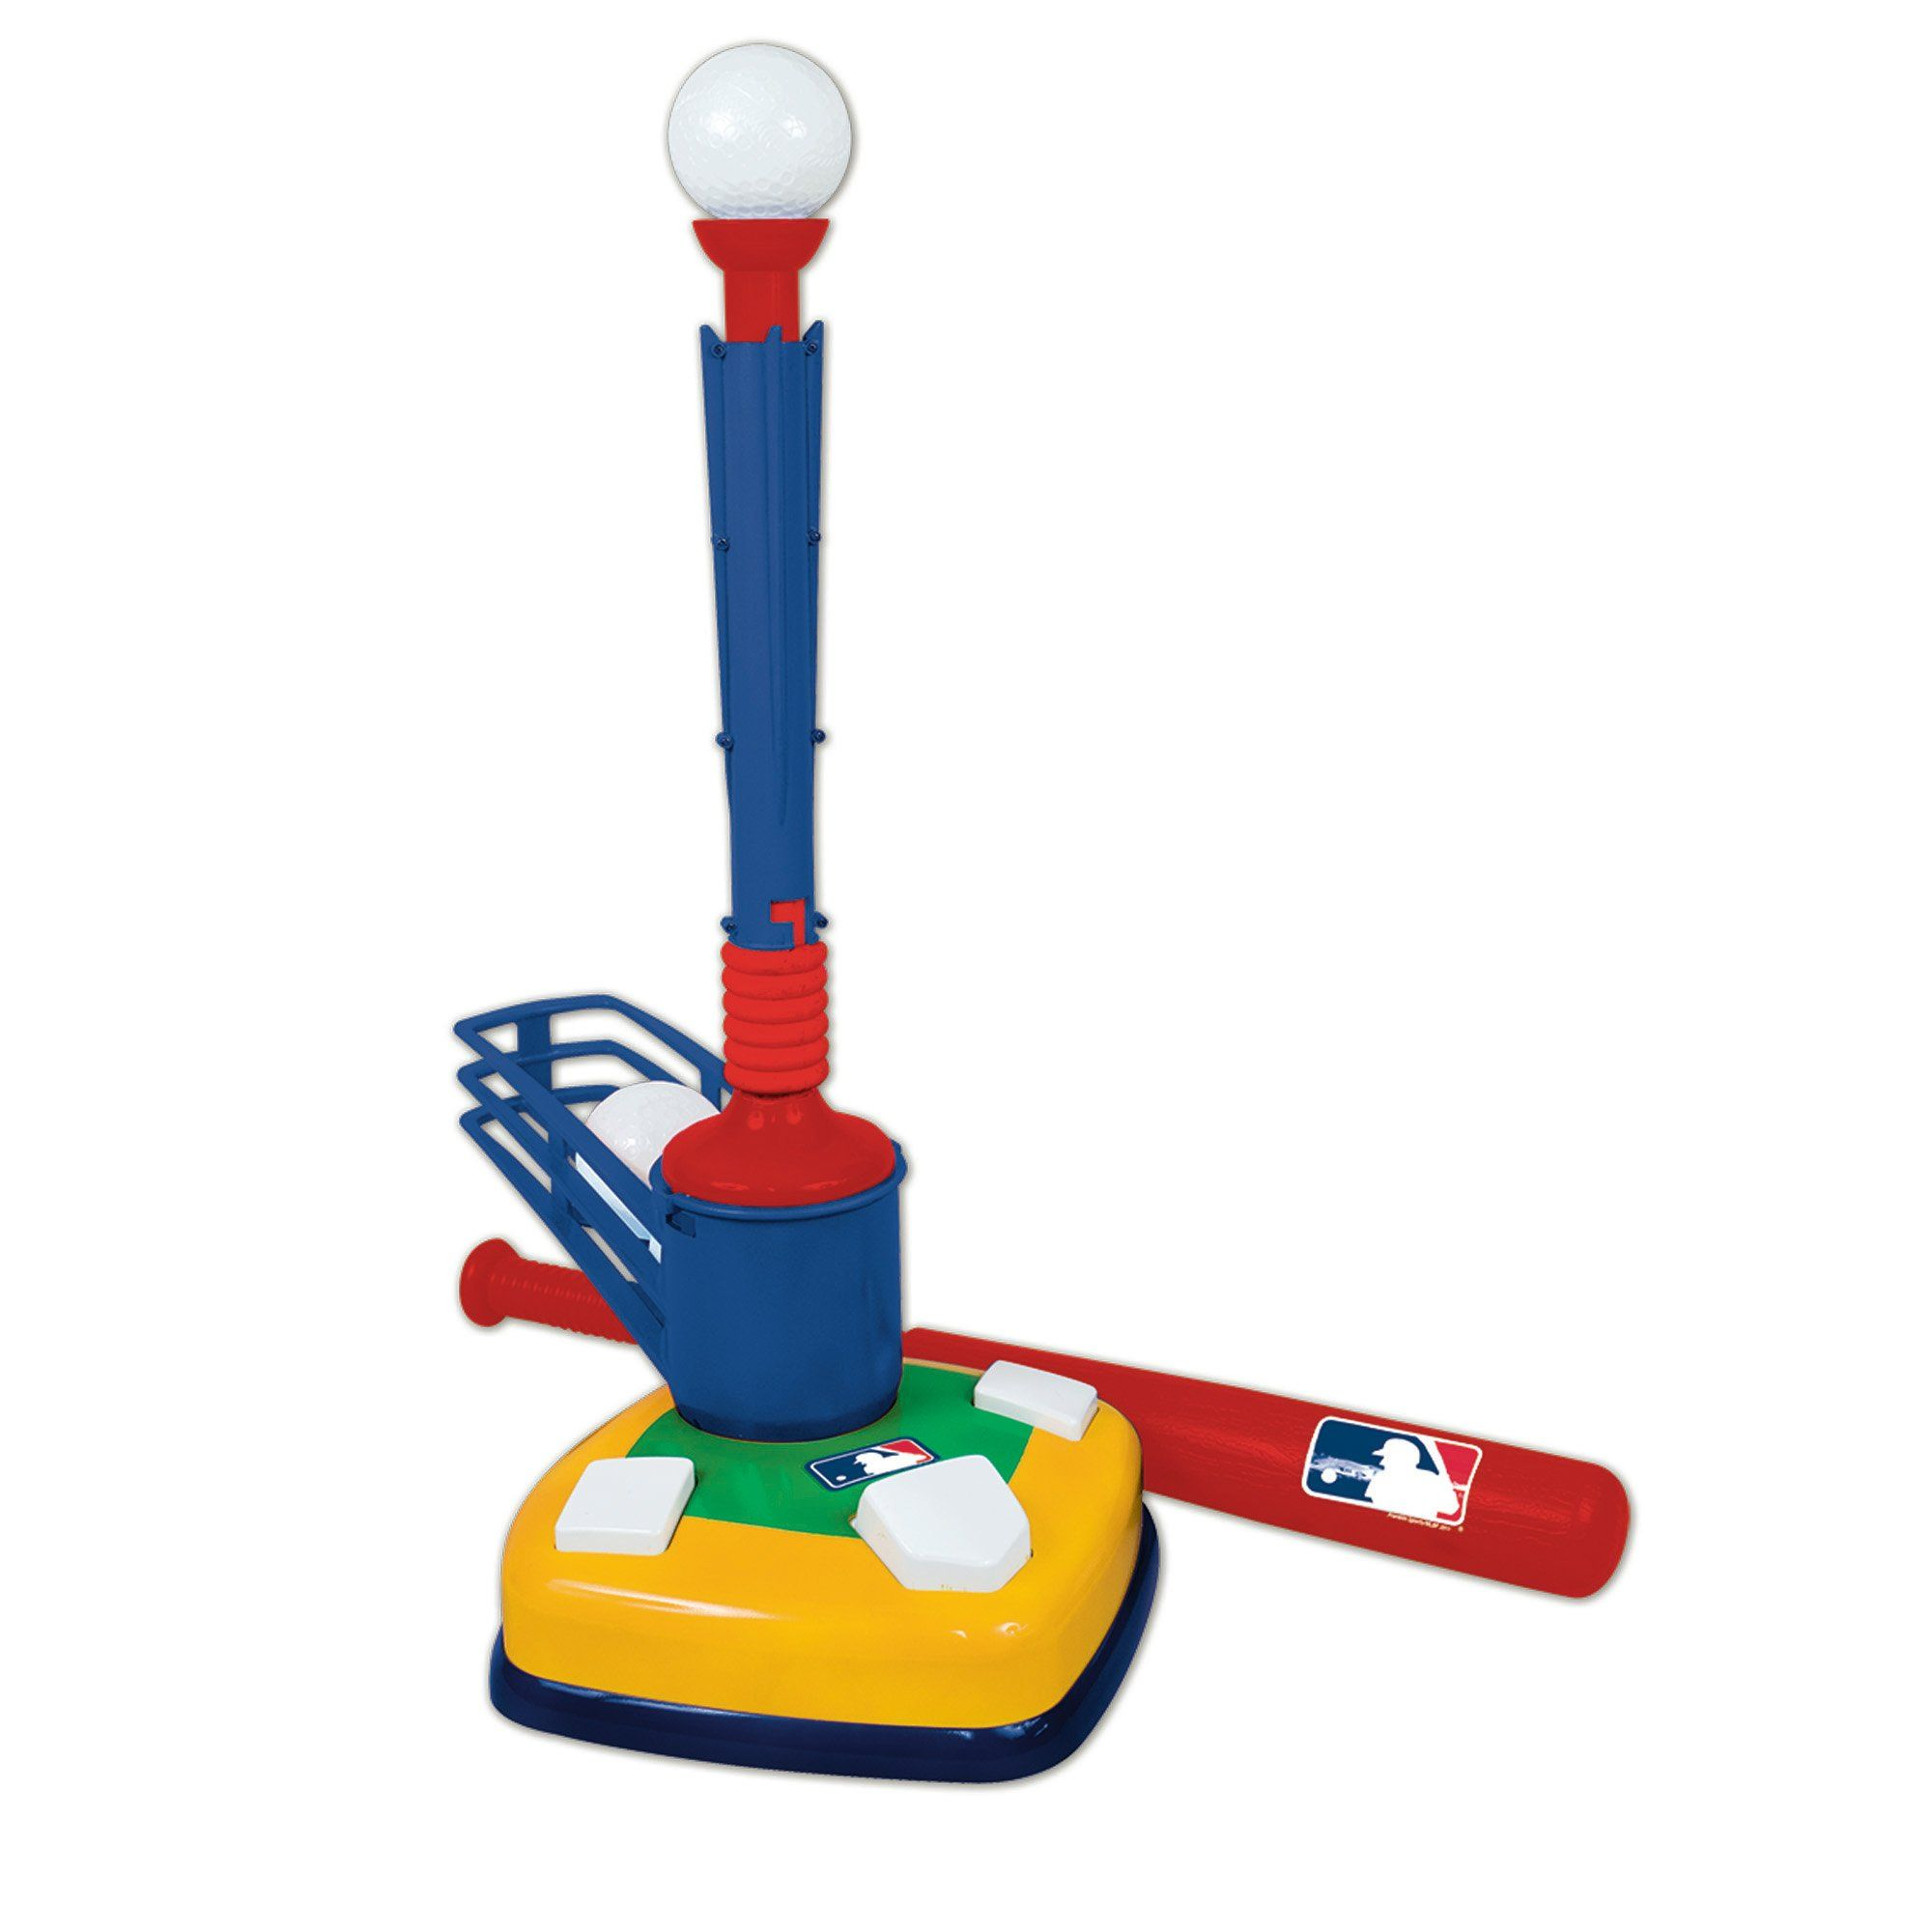 Franklin Sports Mlb Super Star Batter 2in1 Tee And Popup Baseball Training Aid Read More At The Image Li With Images Franklin Sports Baseball Hitting Baseball Training